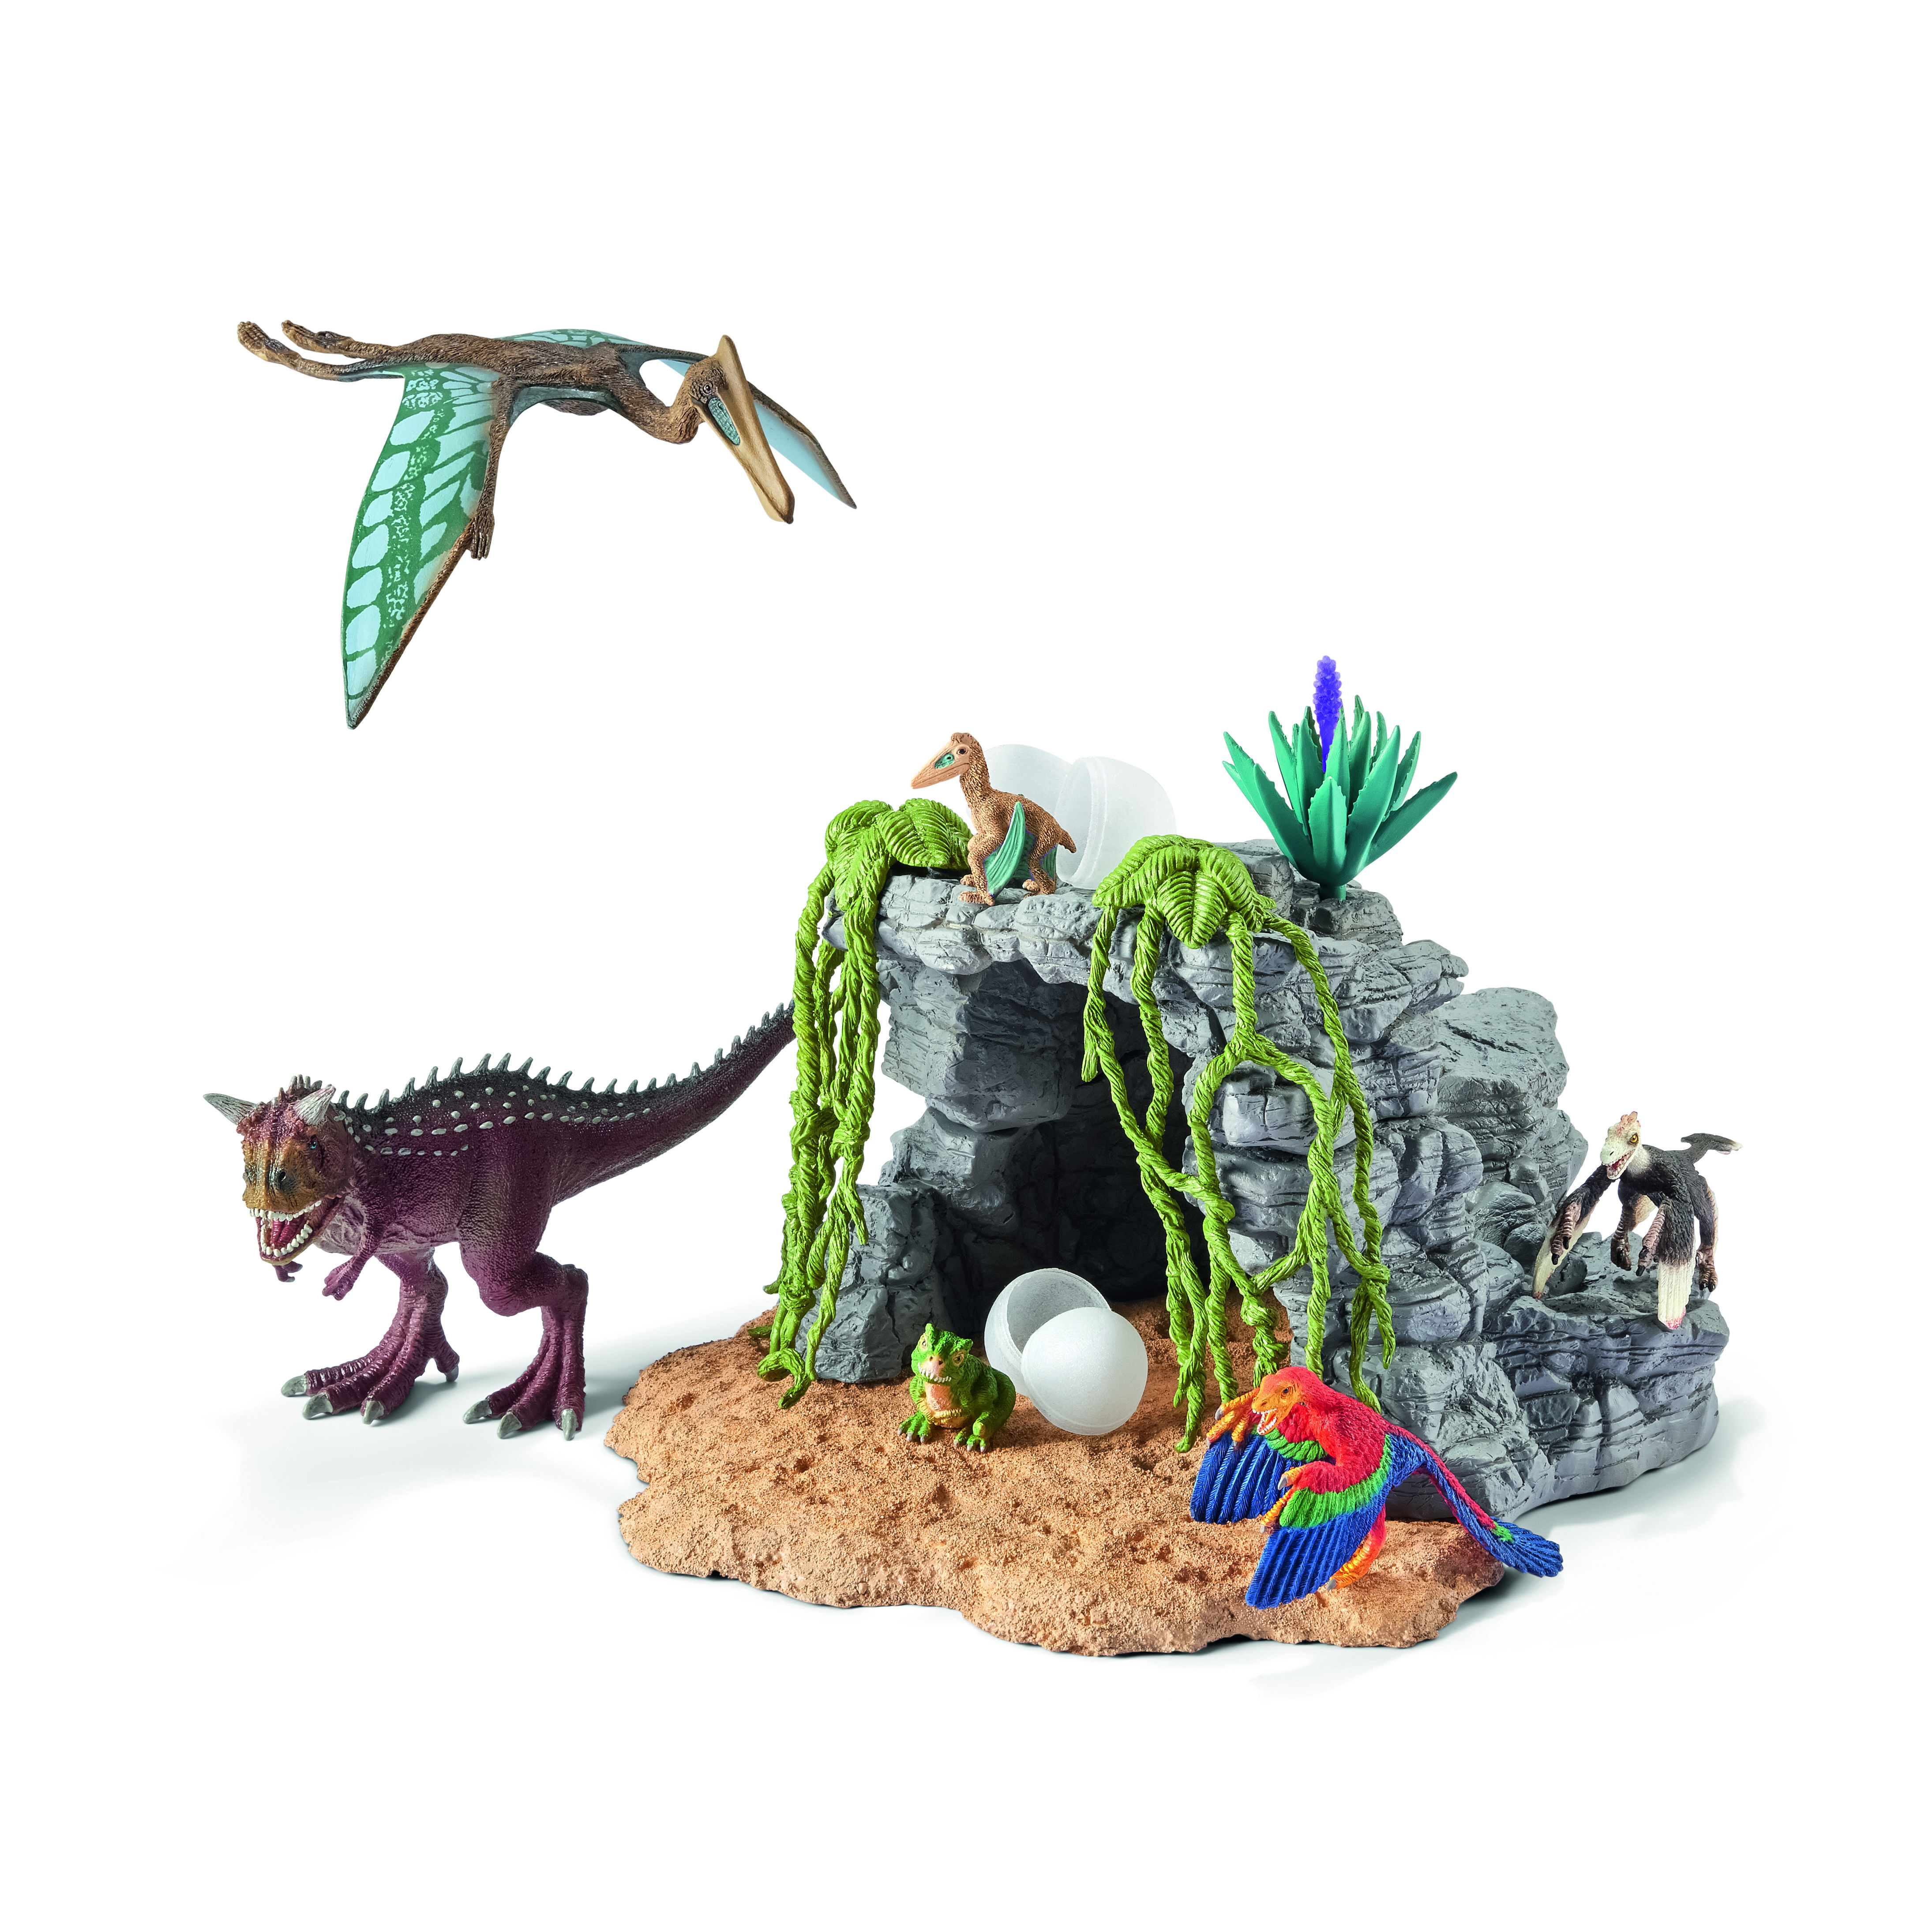 Schleich 42261 Dinosaur Set with Cave